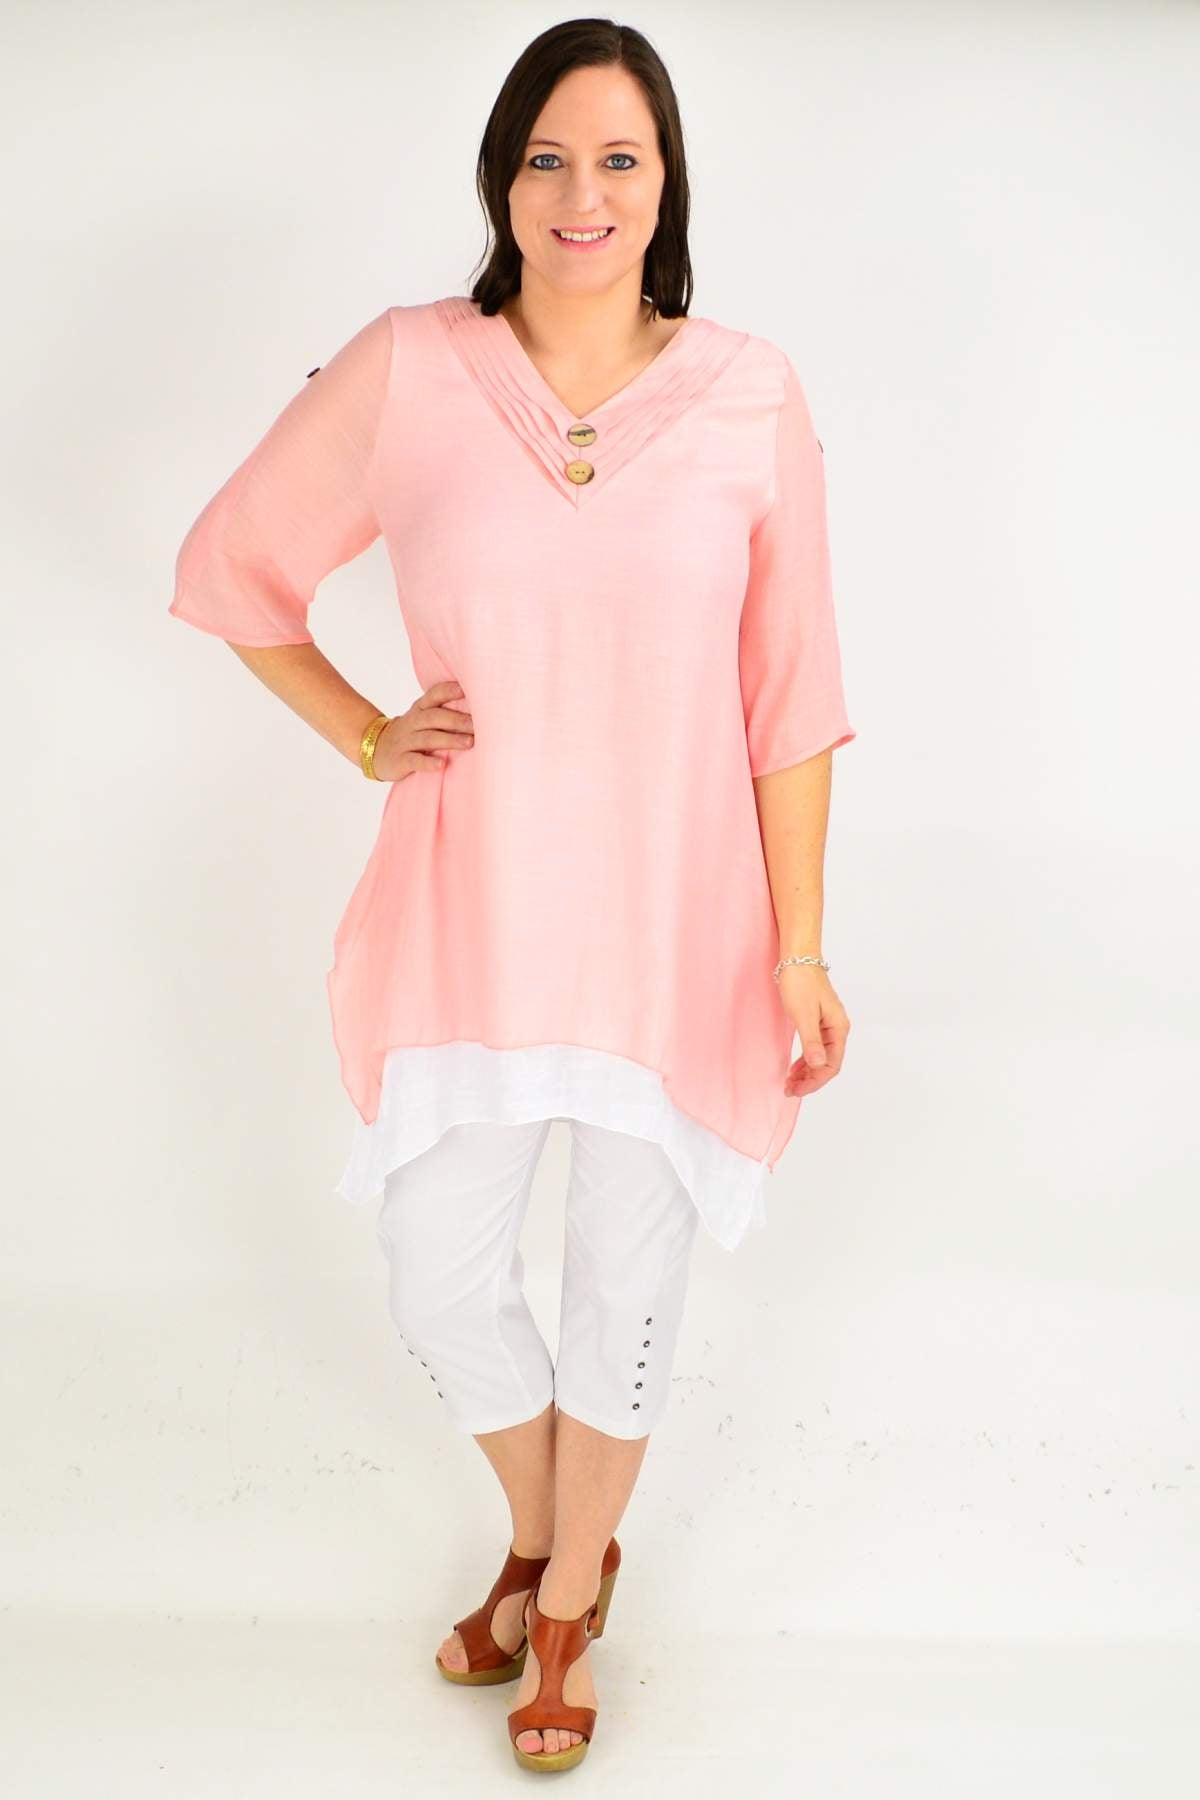 Model wearing peach cotton tunic top by calico available at ilovetunics.com